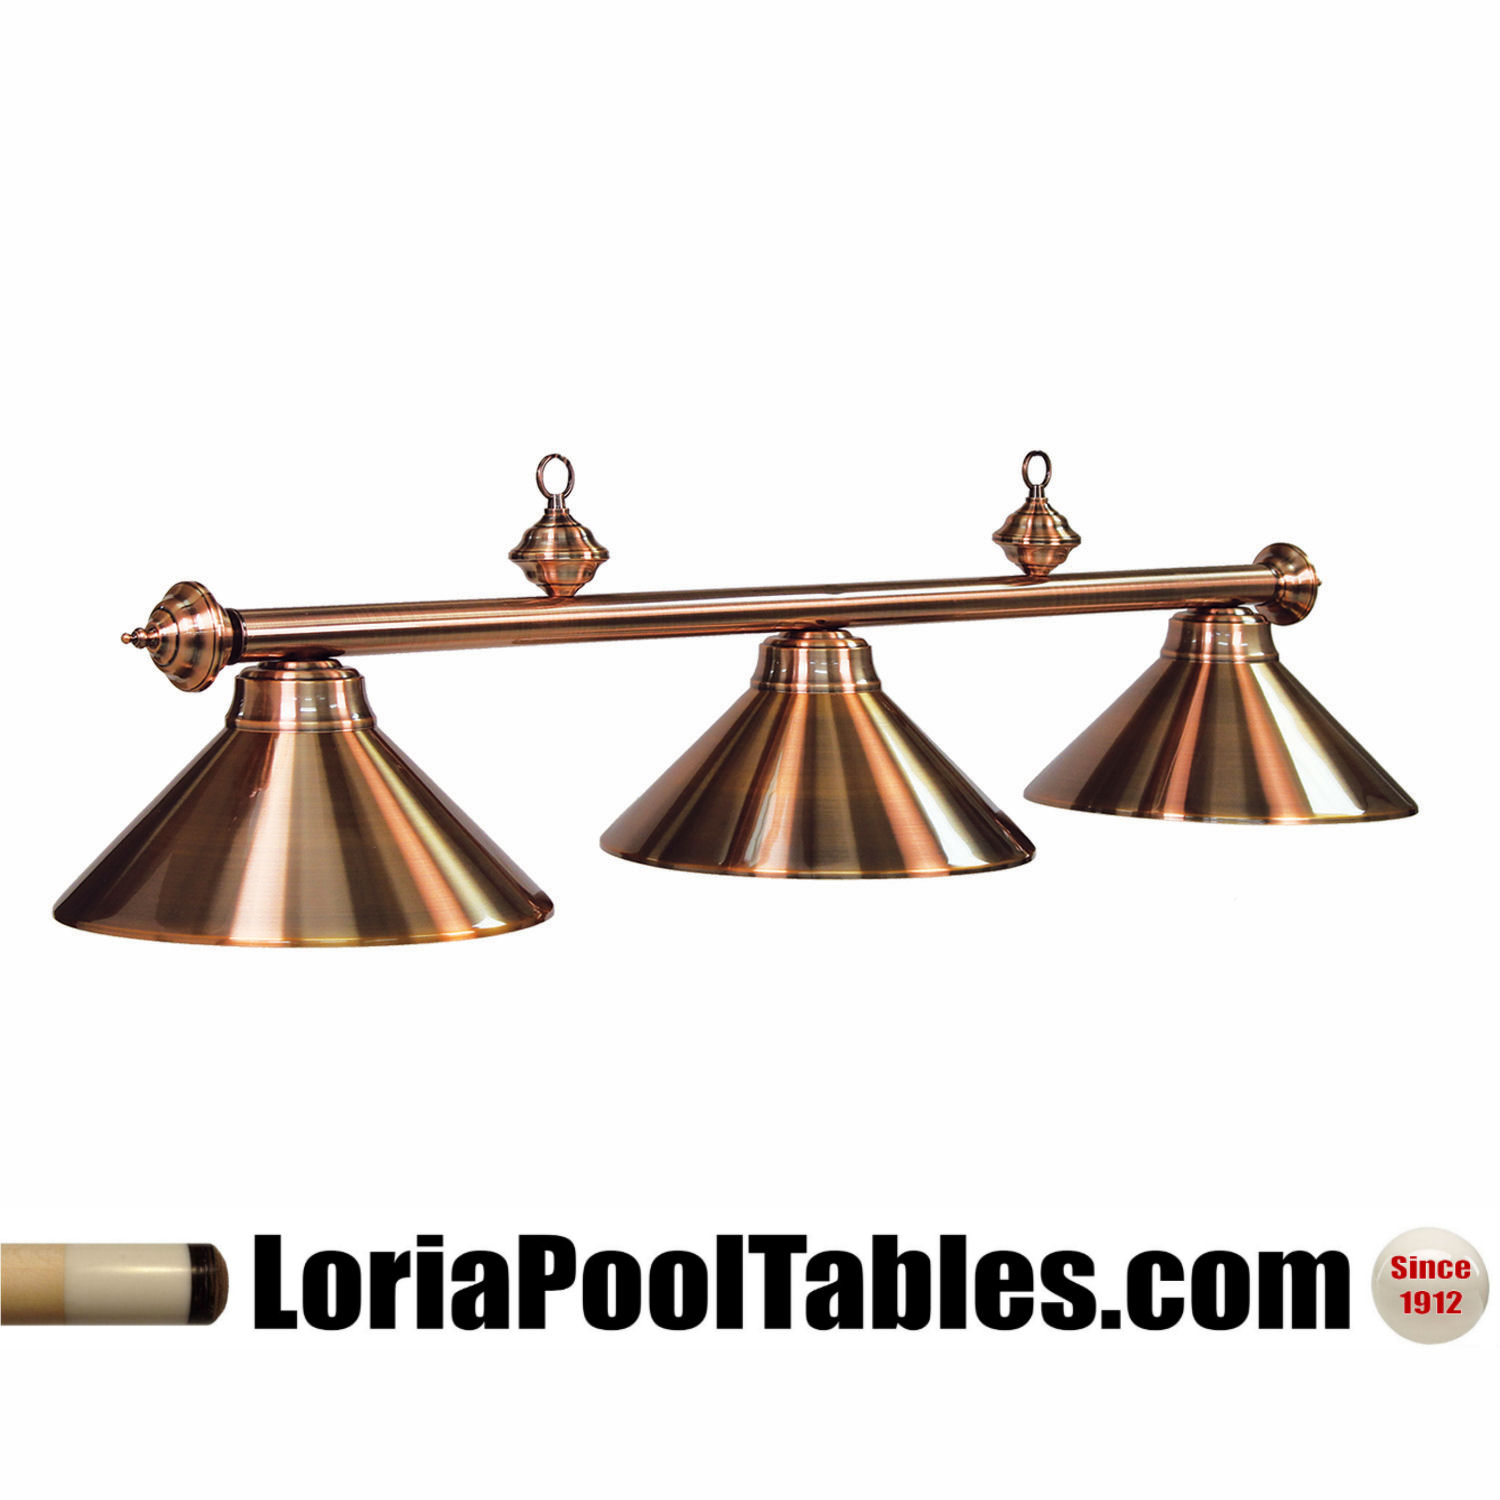 Pool Table Light Projector: 54'' Metal Shade Antique Copper Finish Pool Table Light